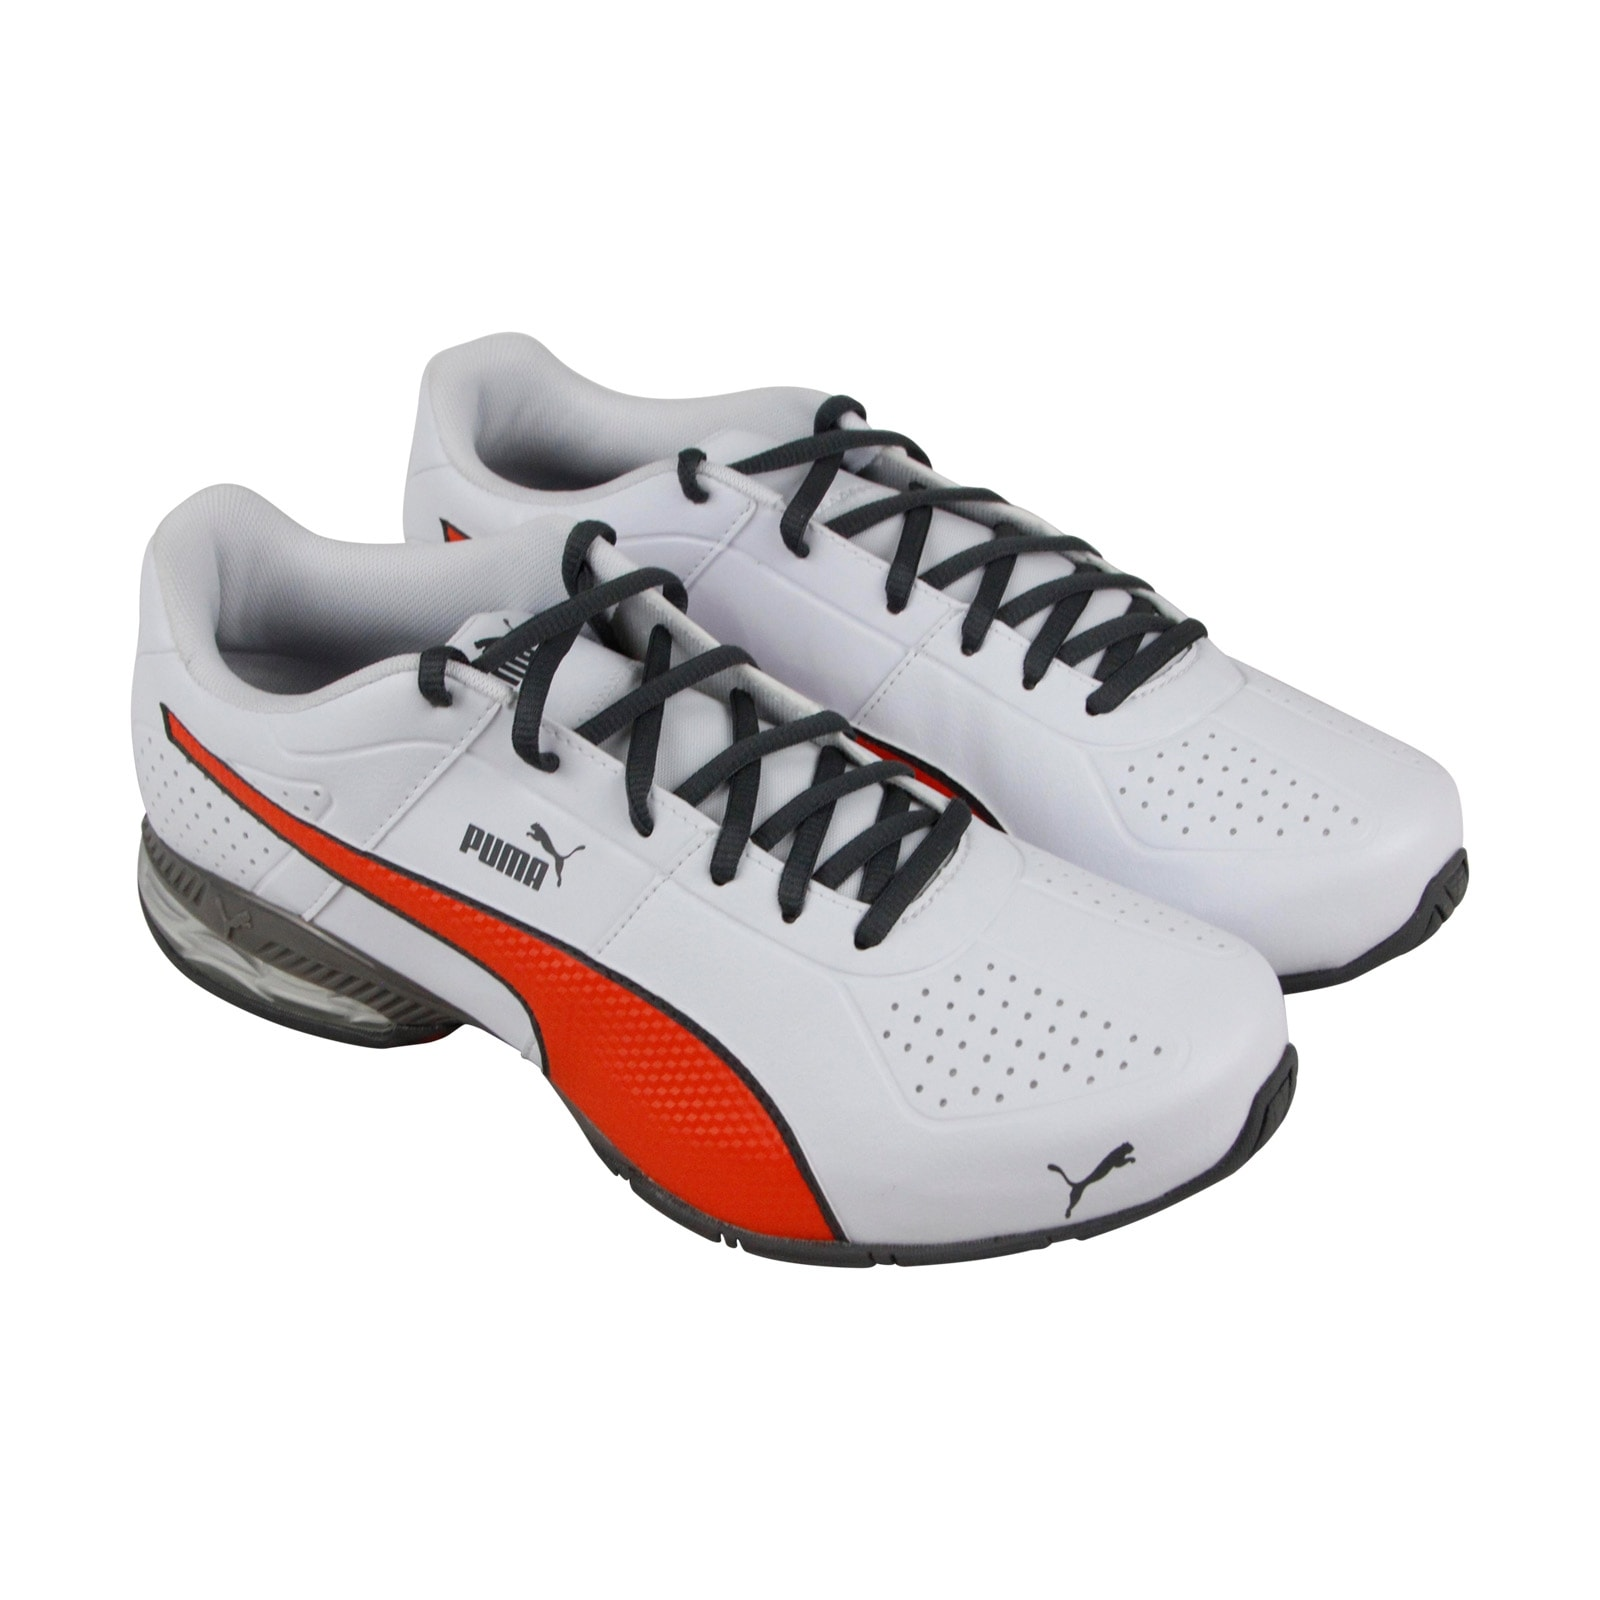 ceae192577cf0 Buy Puma Men's Athletic Shoes Online at Overstock | Our Best Men's ...